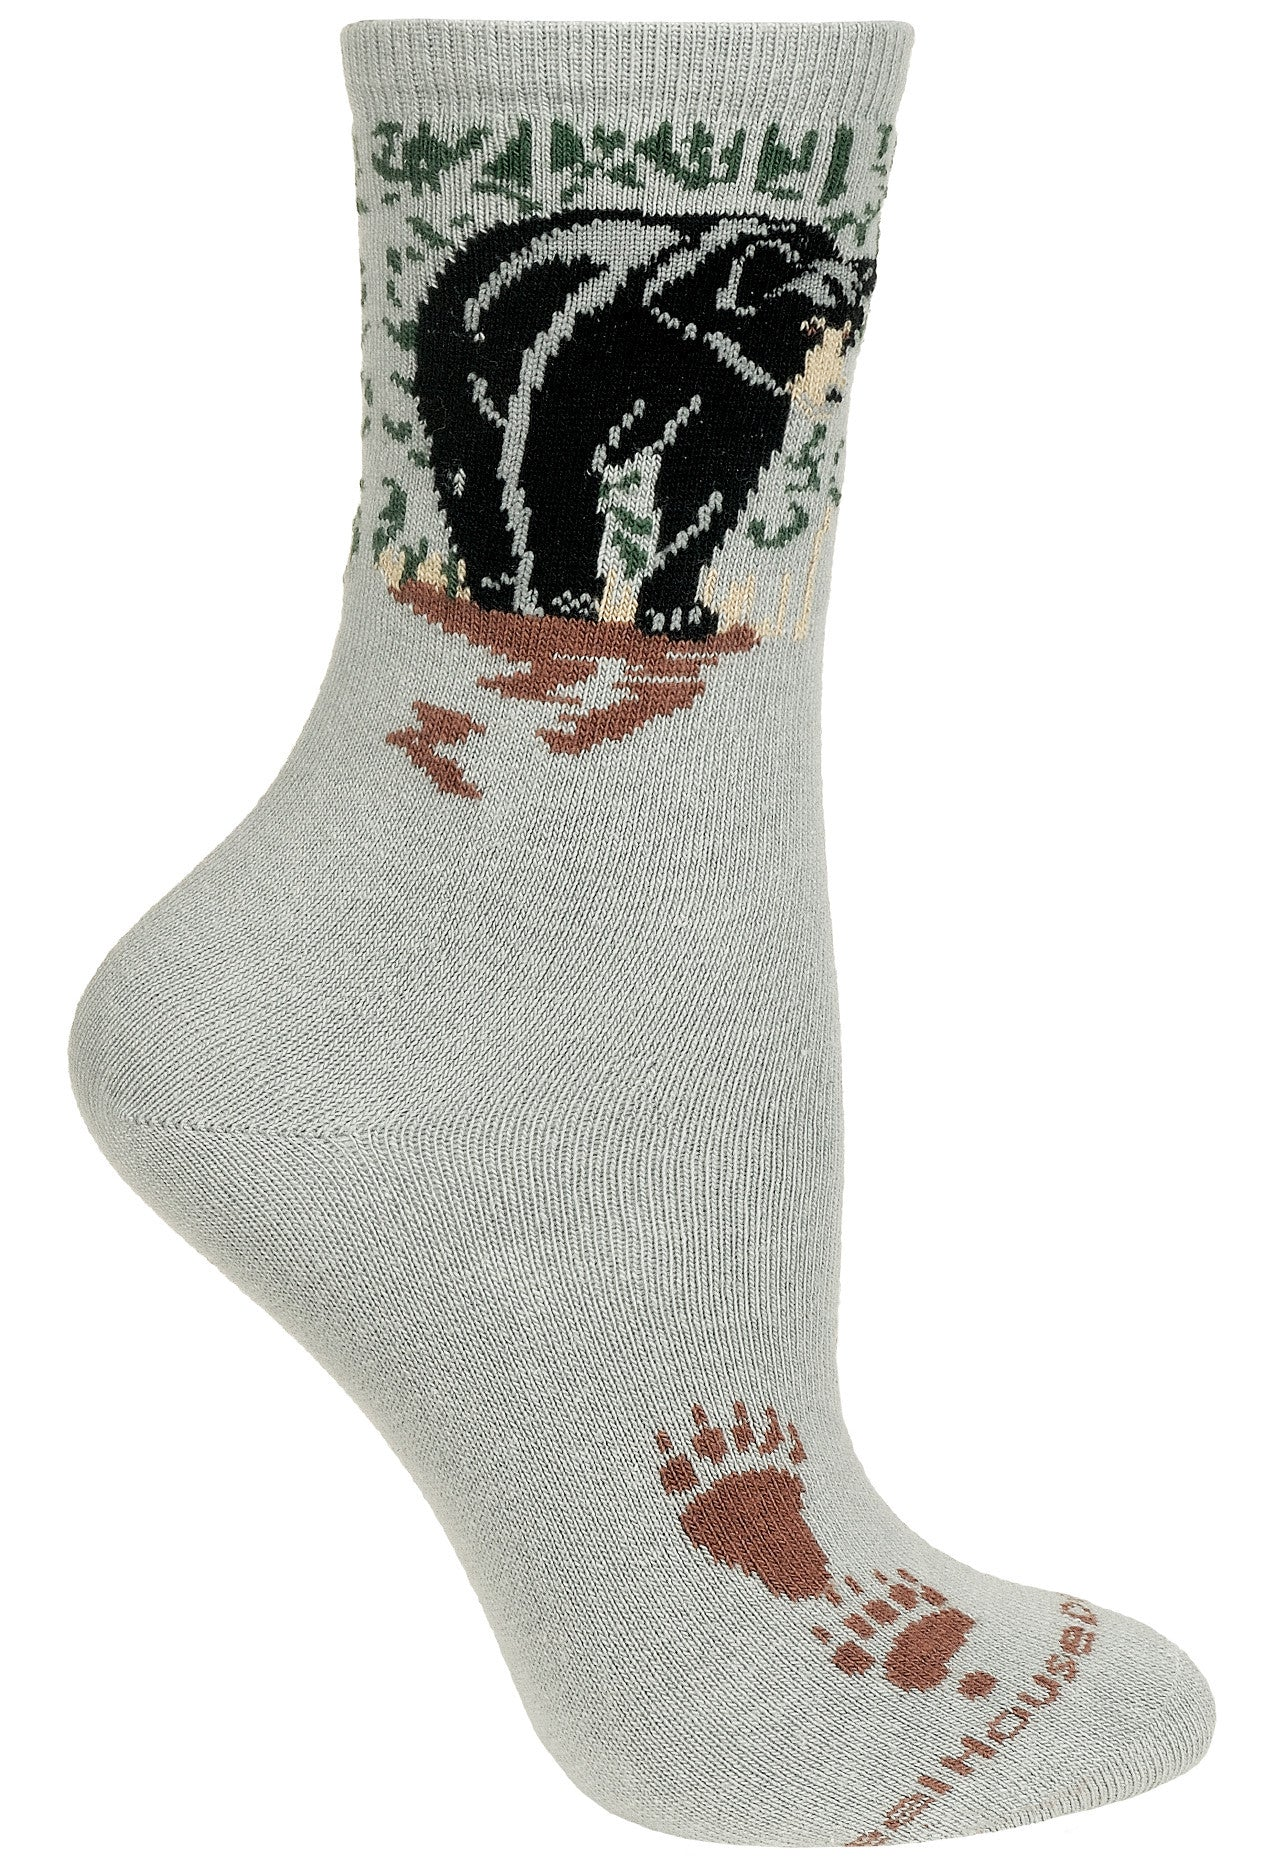 Black Bear on Gray Socks